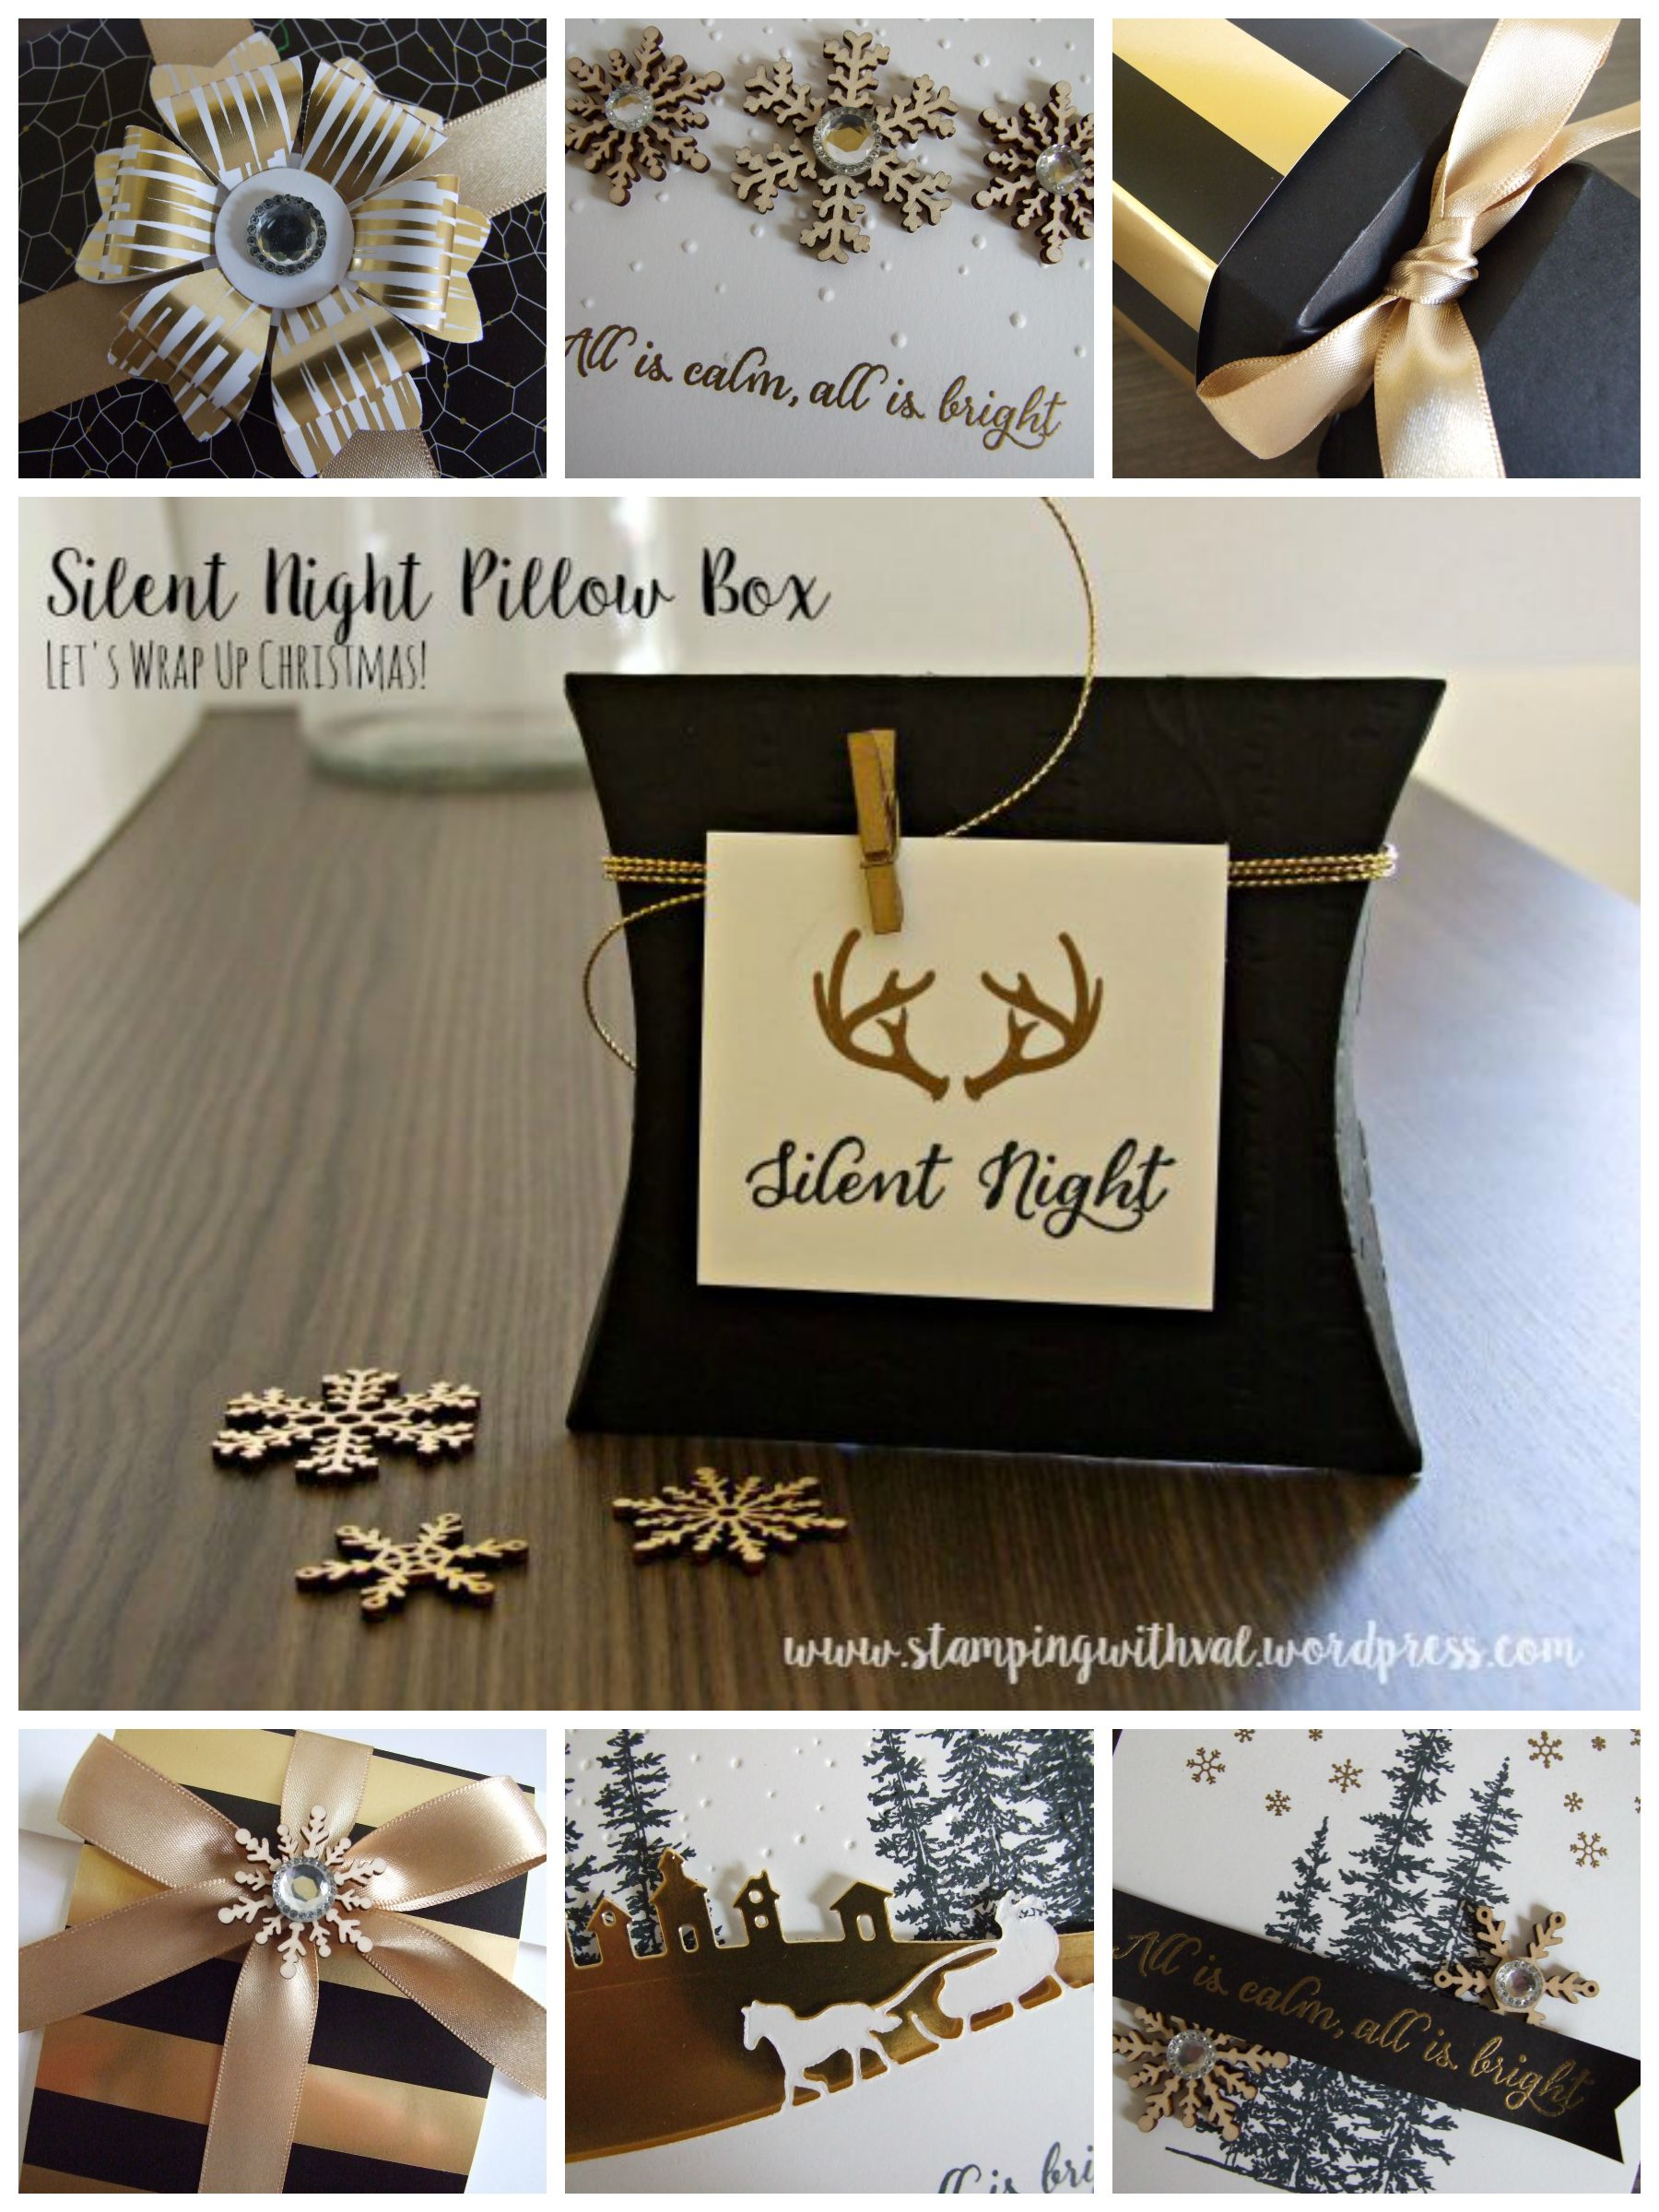 Let's Wrap Up Christmas with Stamping With Val - Valerie Moody; Independent Stampin' Up! Demonstrator. X